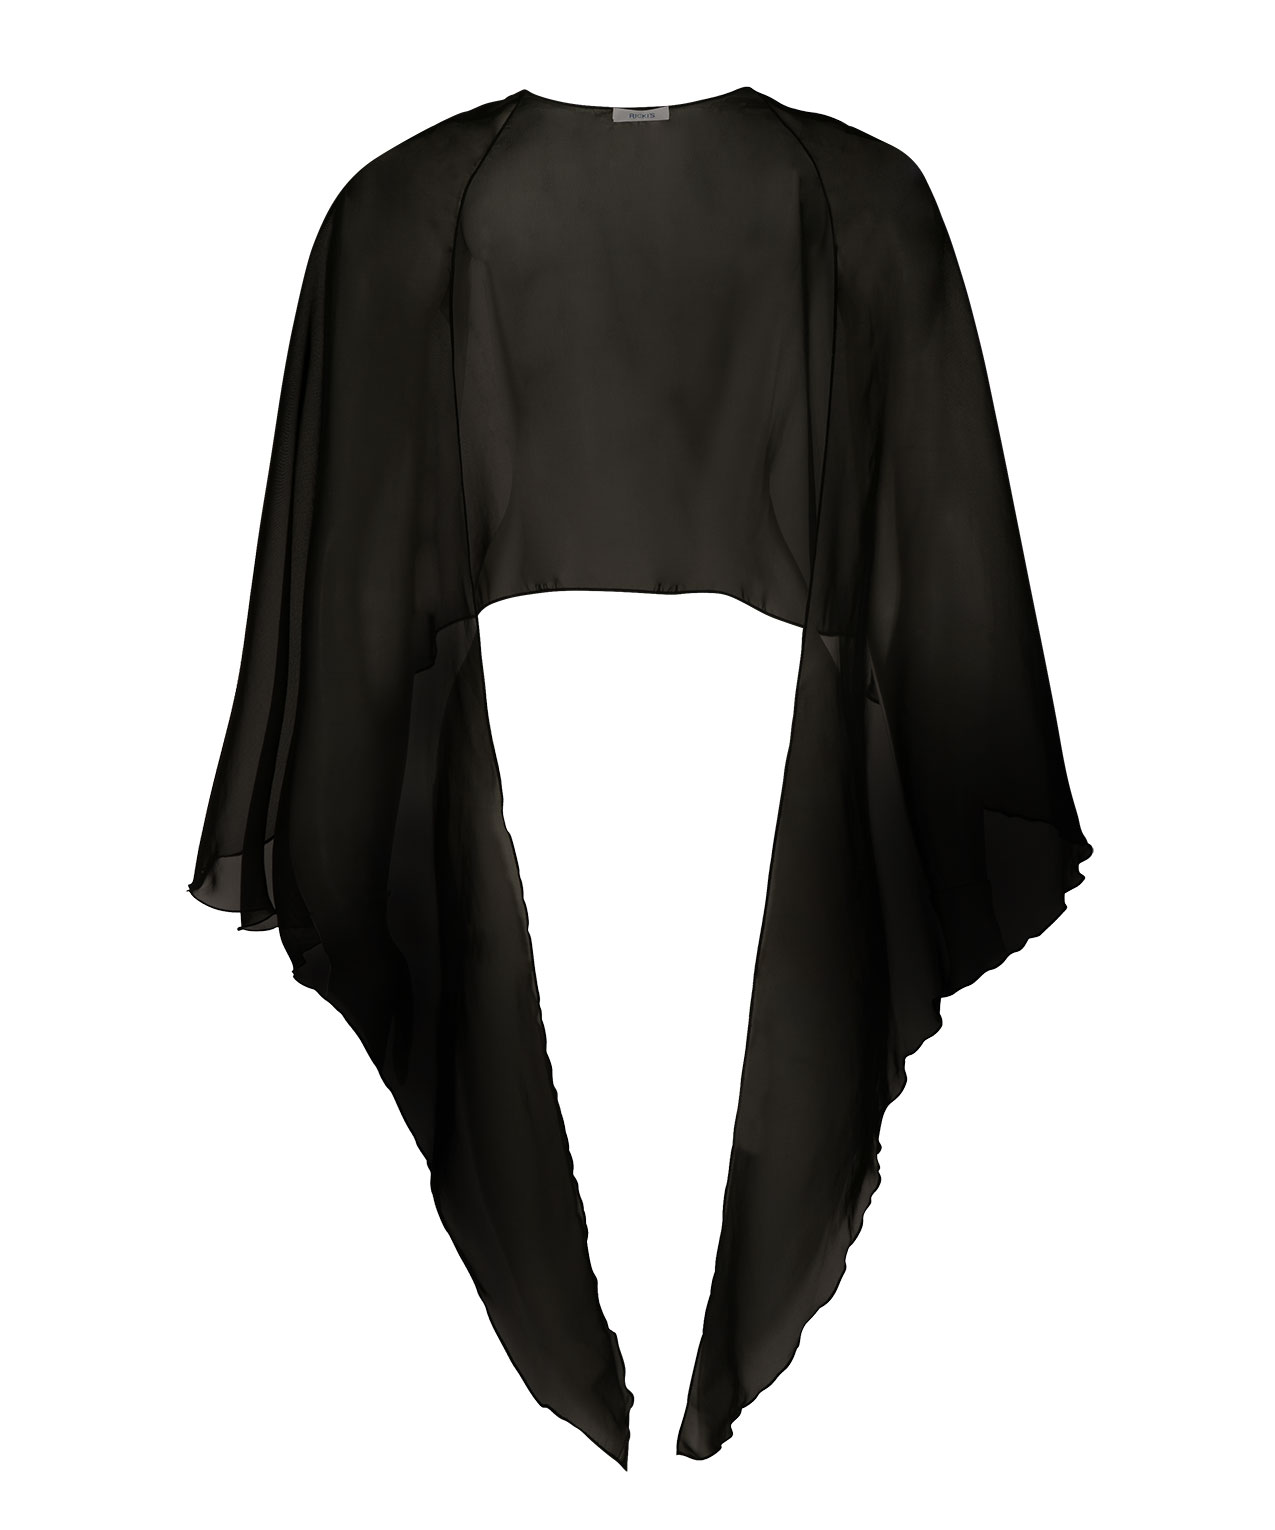 Sheer Black Shawl Scarf